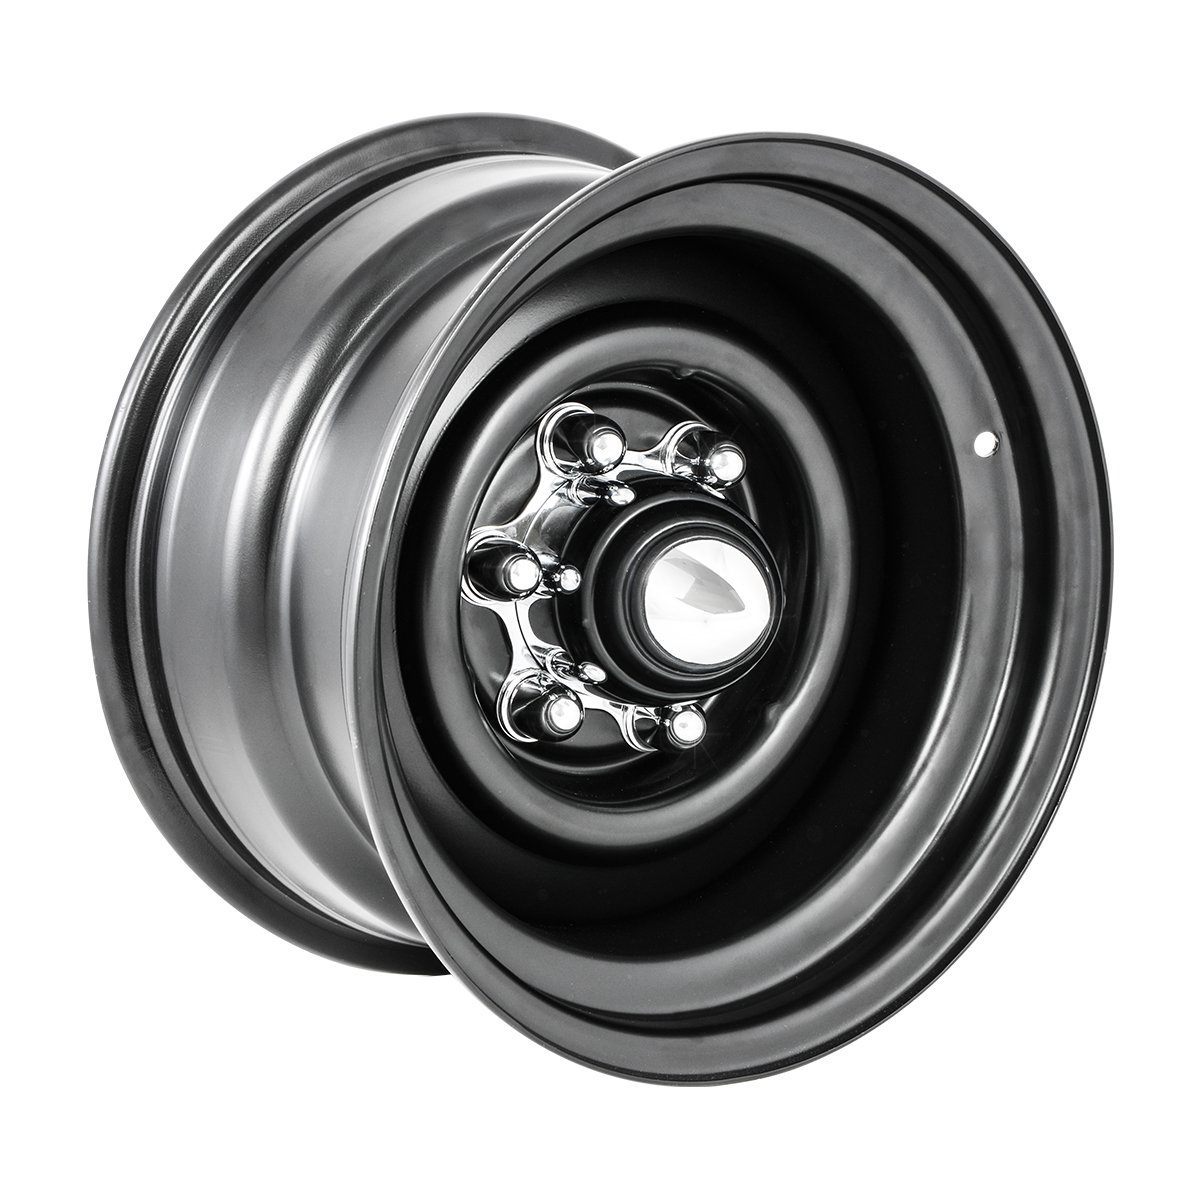 KNS Accessories KC6050 Chrome 6 Lug Spider Hub Cap for 1947-1972 Chevy,  GMC, Pick Up Truck, C10, C15